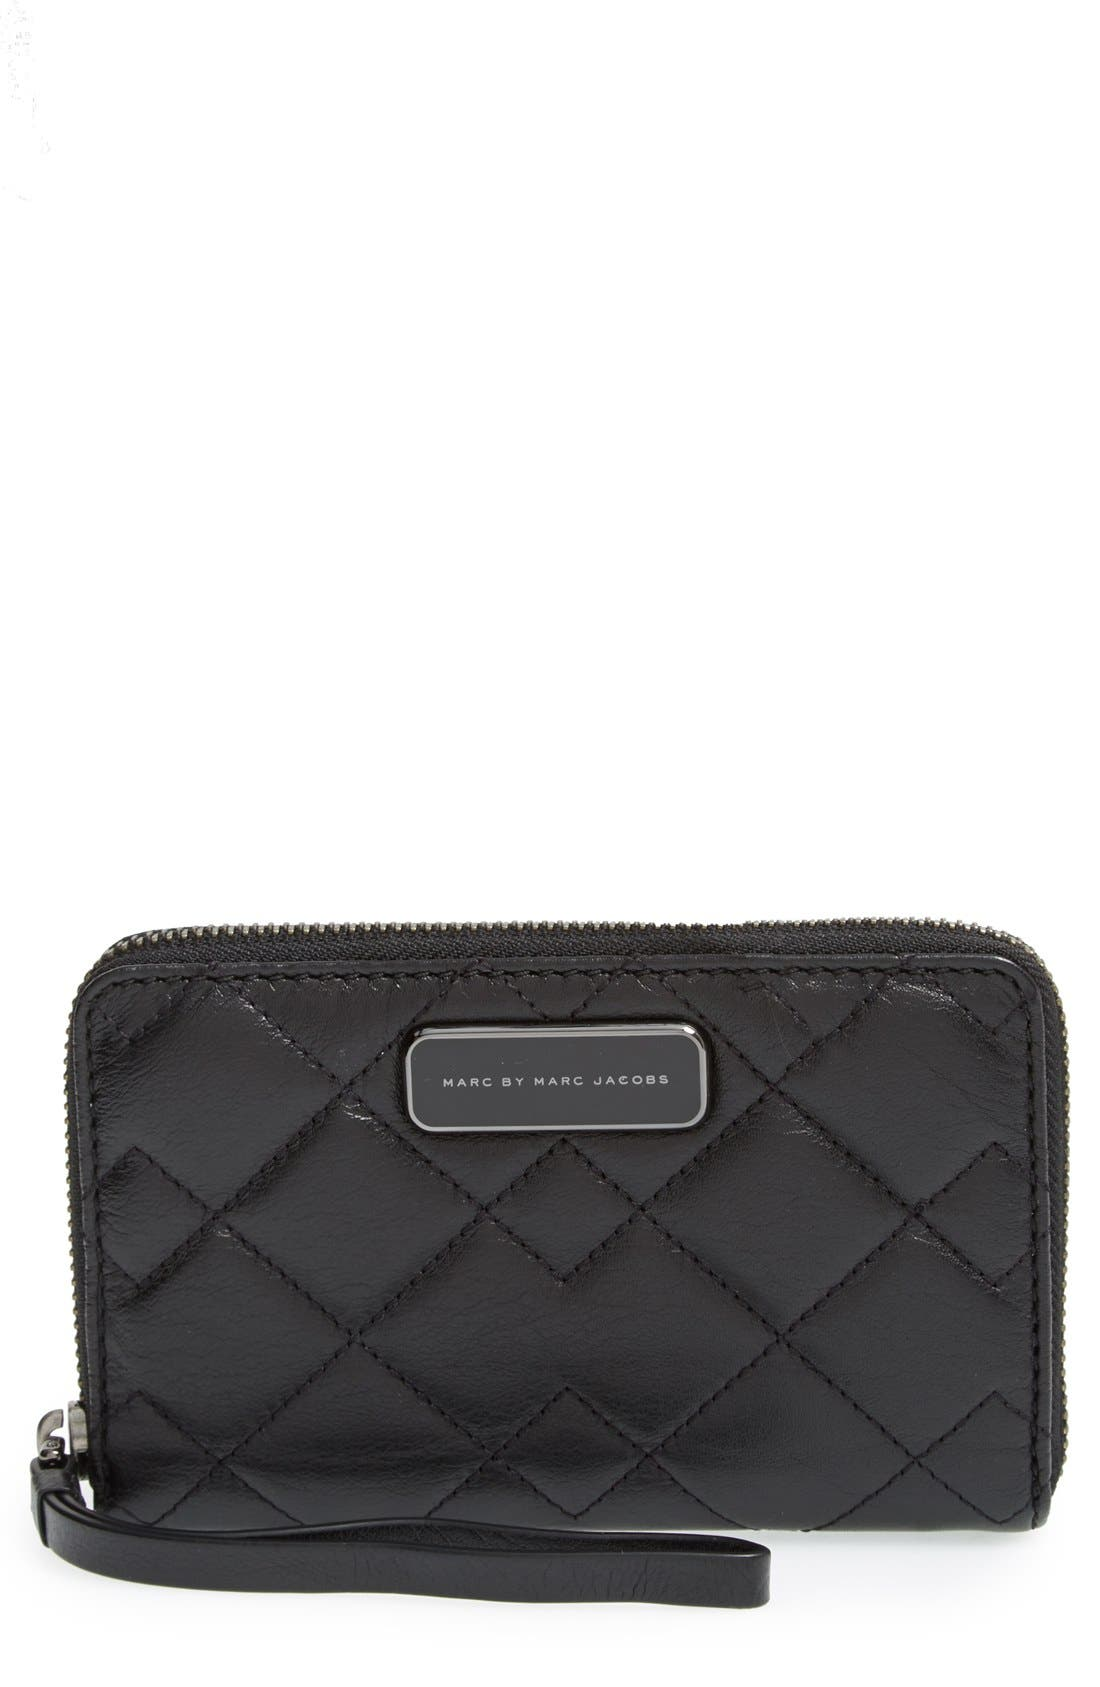 Alternate Image 1 Selected - MARC BY MARC JACOBS 'Crosby - Wingman' Quilted Leather Phone Wristlet